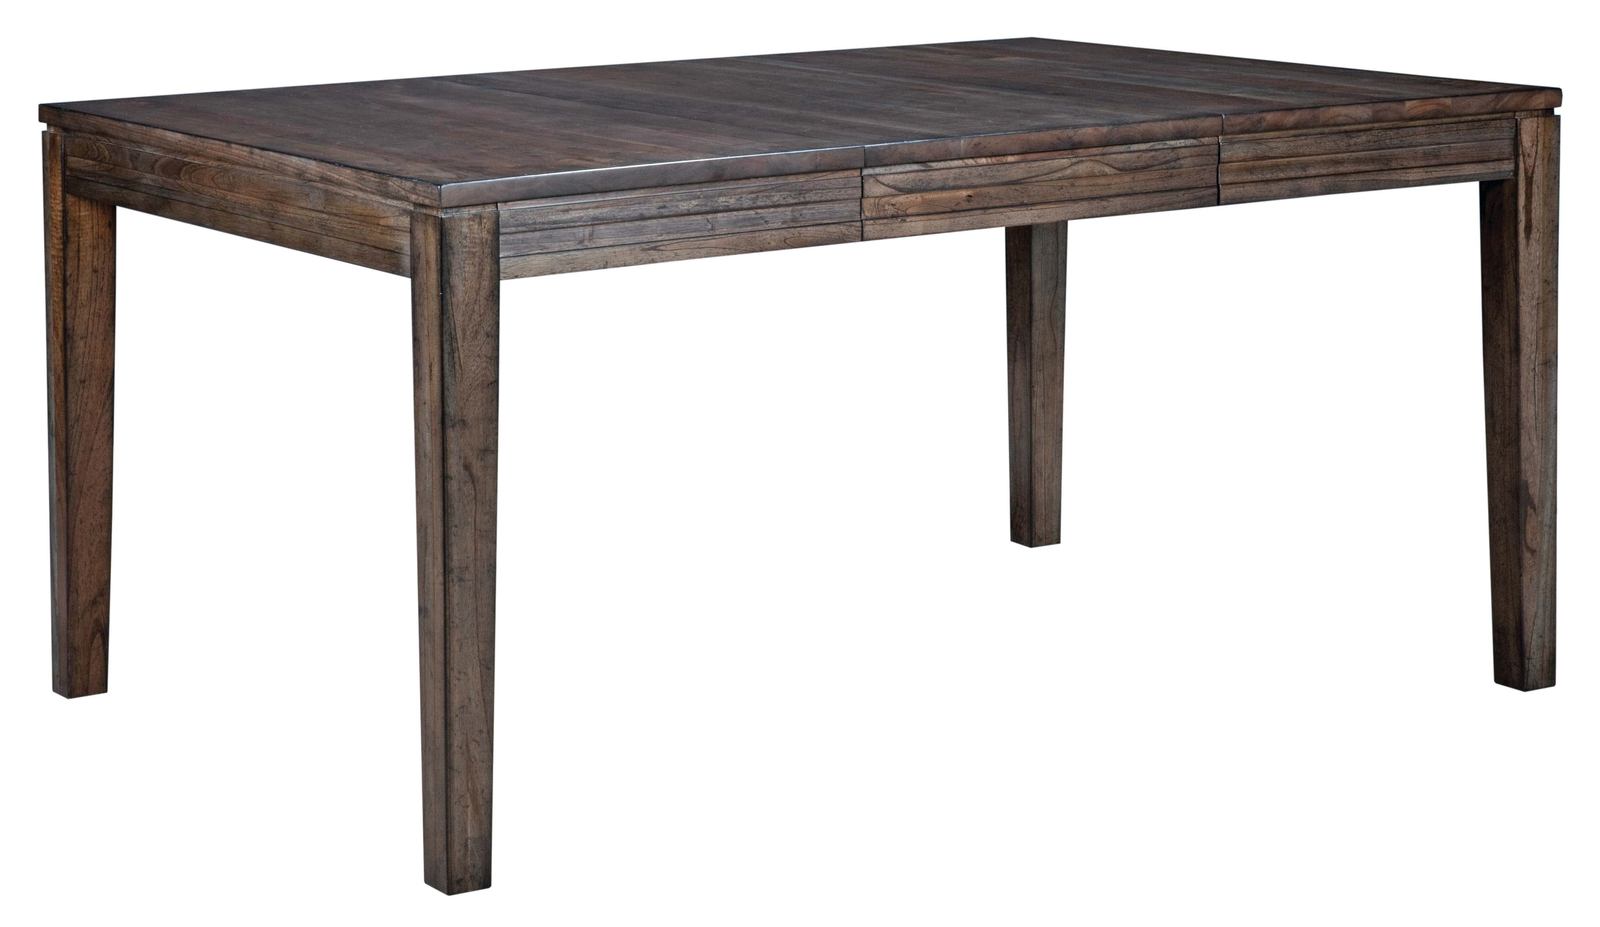 Charming Kincaid Montreat Cornerstone Rectangular Dining Table In Graphite 84 054  CODE:UNIV20 For 20